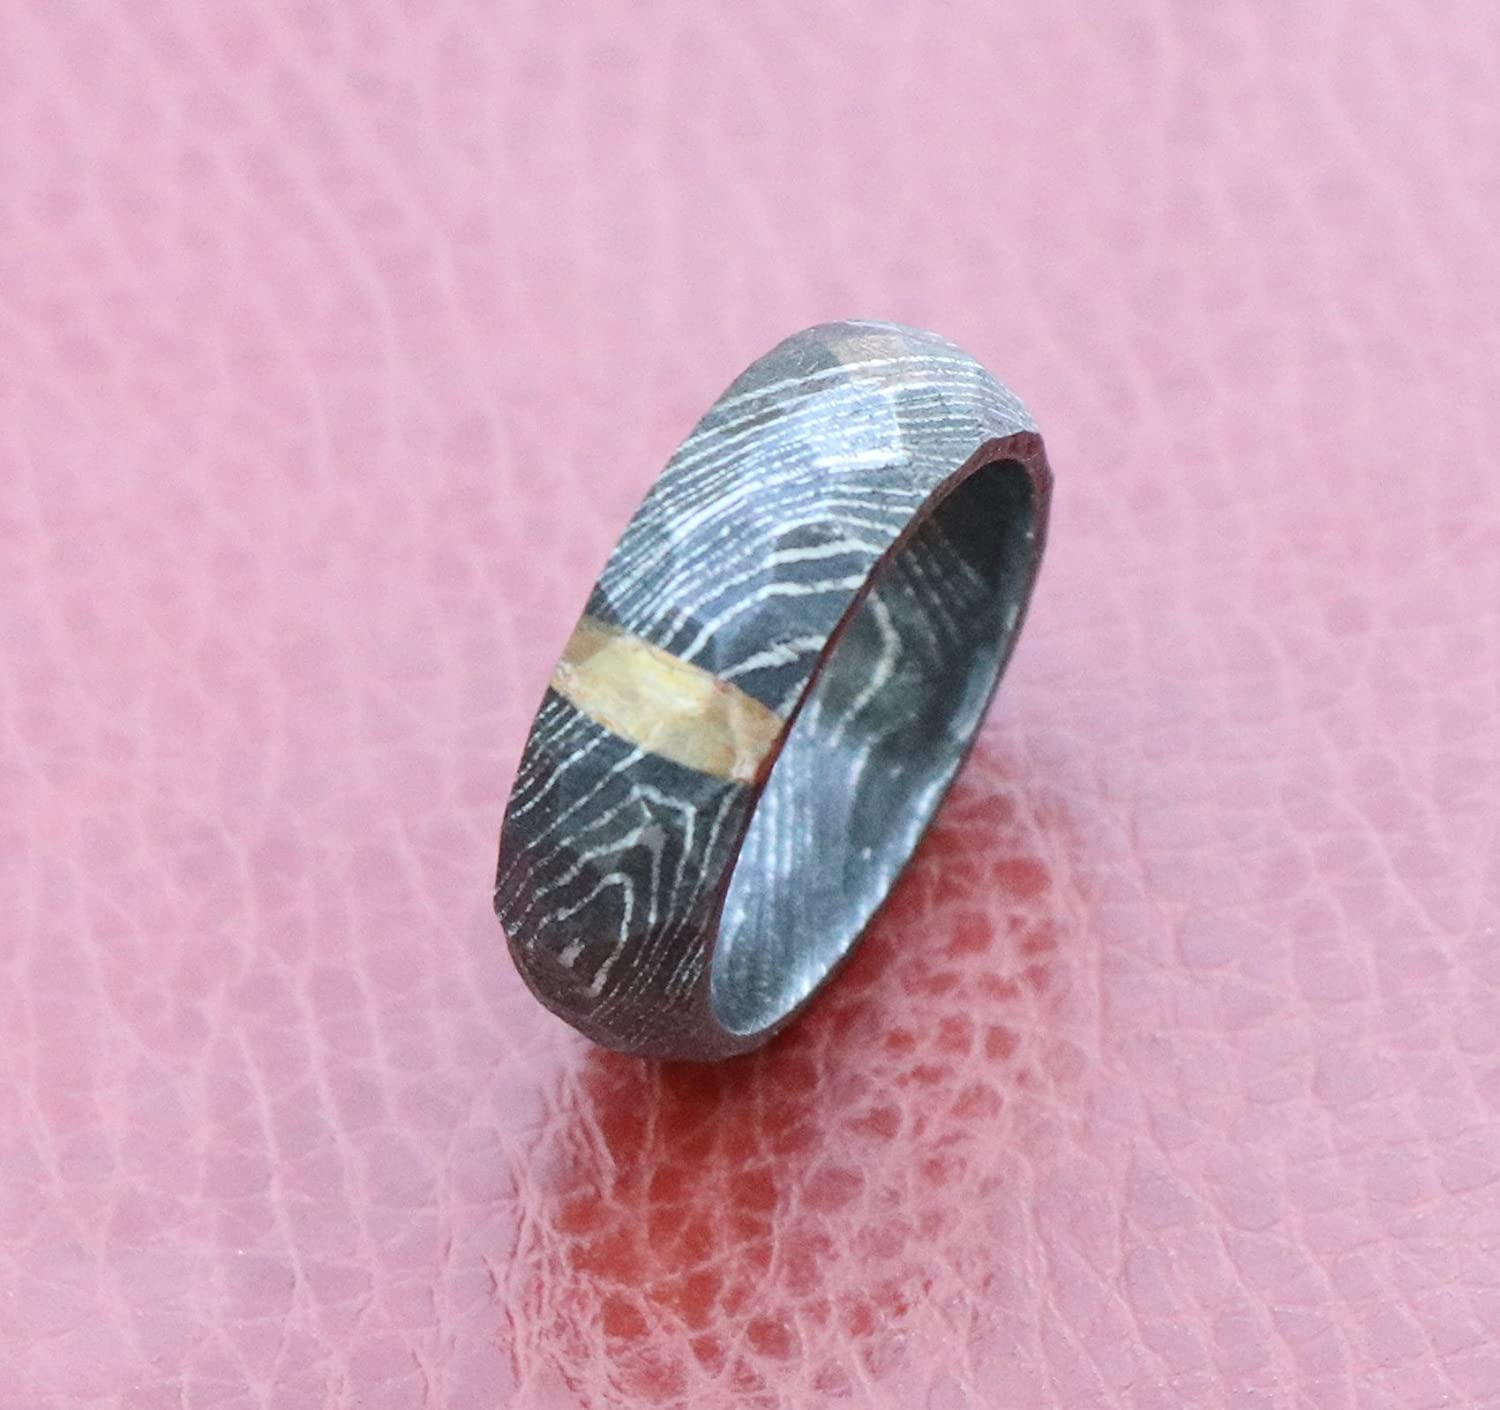 Amazon.com: Damascus Steel Ring tumble rock Genuine Craftsmanship ...